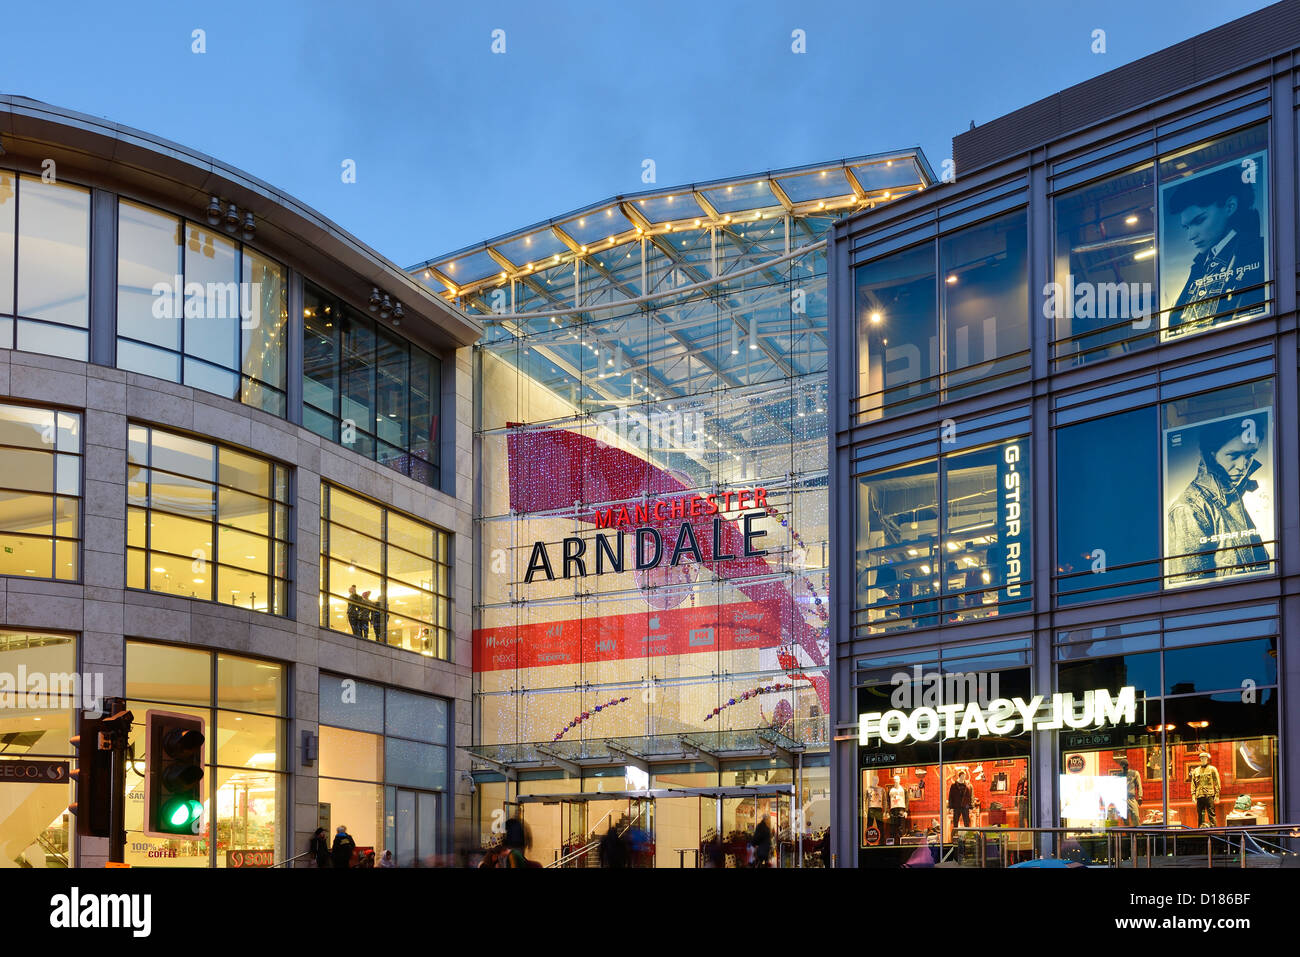 4c2ae7102d9c Entrance to The Manchester Arndale Centre Stock Photo  52426403 - Alamy